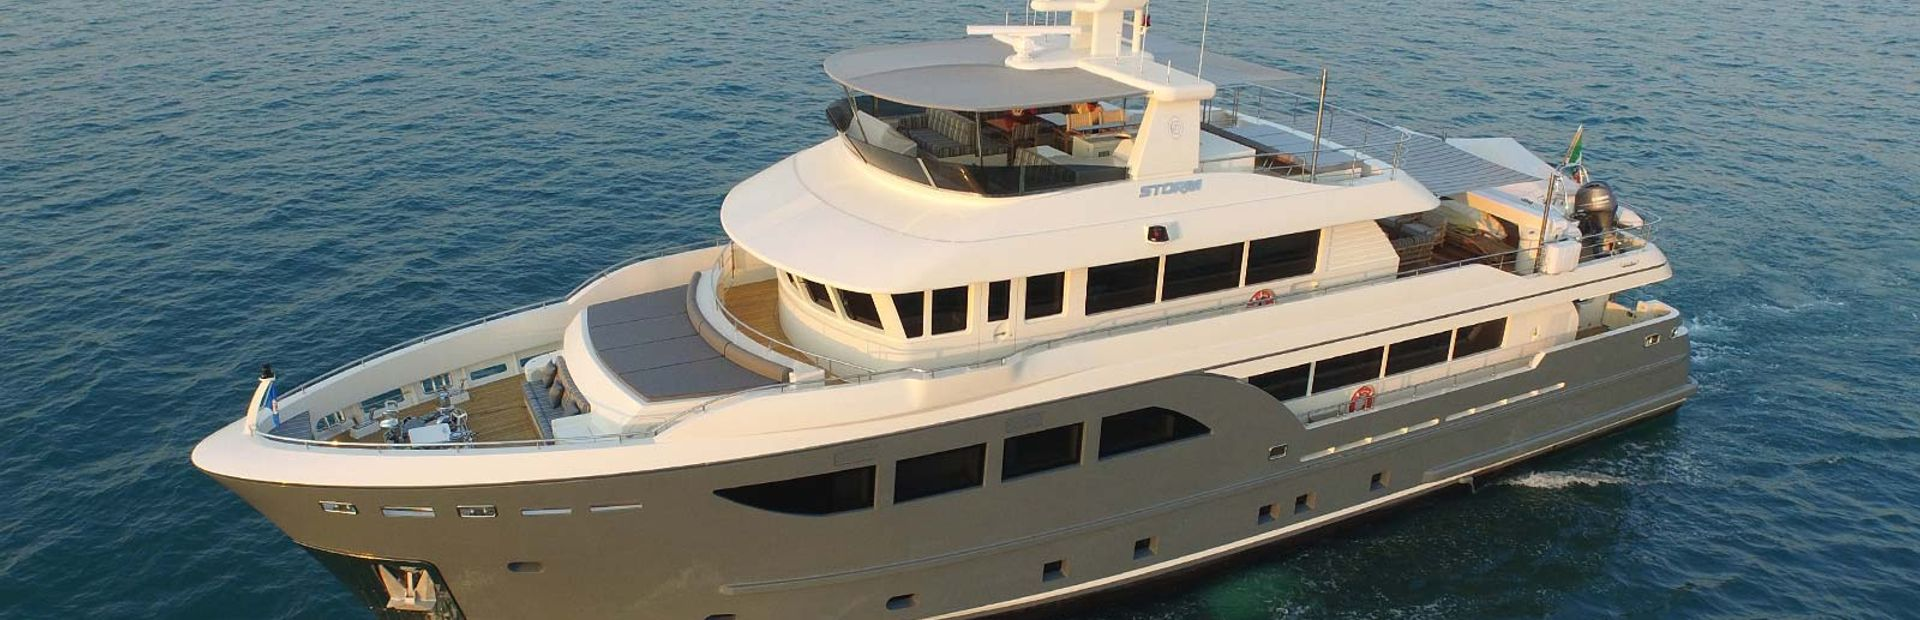 Cantiere Delle Marche Darwin 107 Yacht Charter